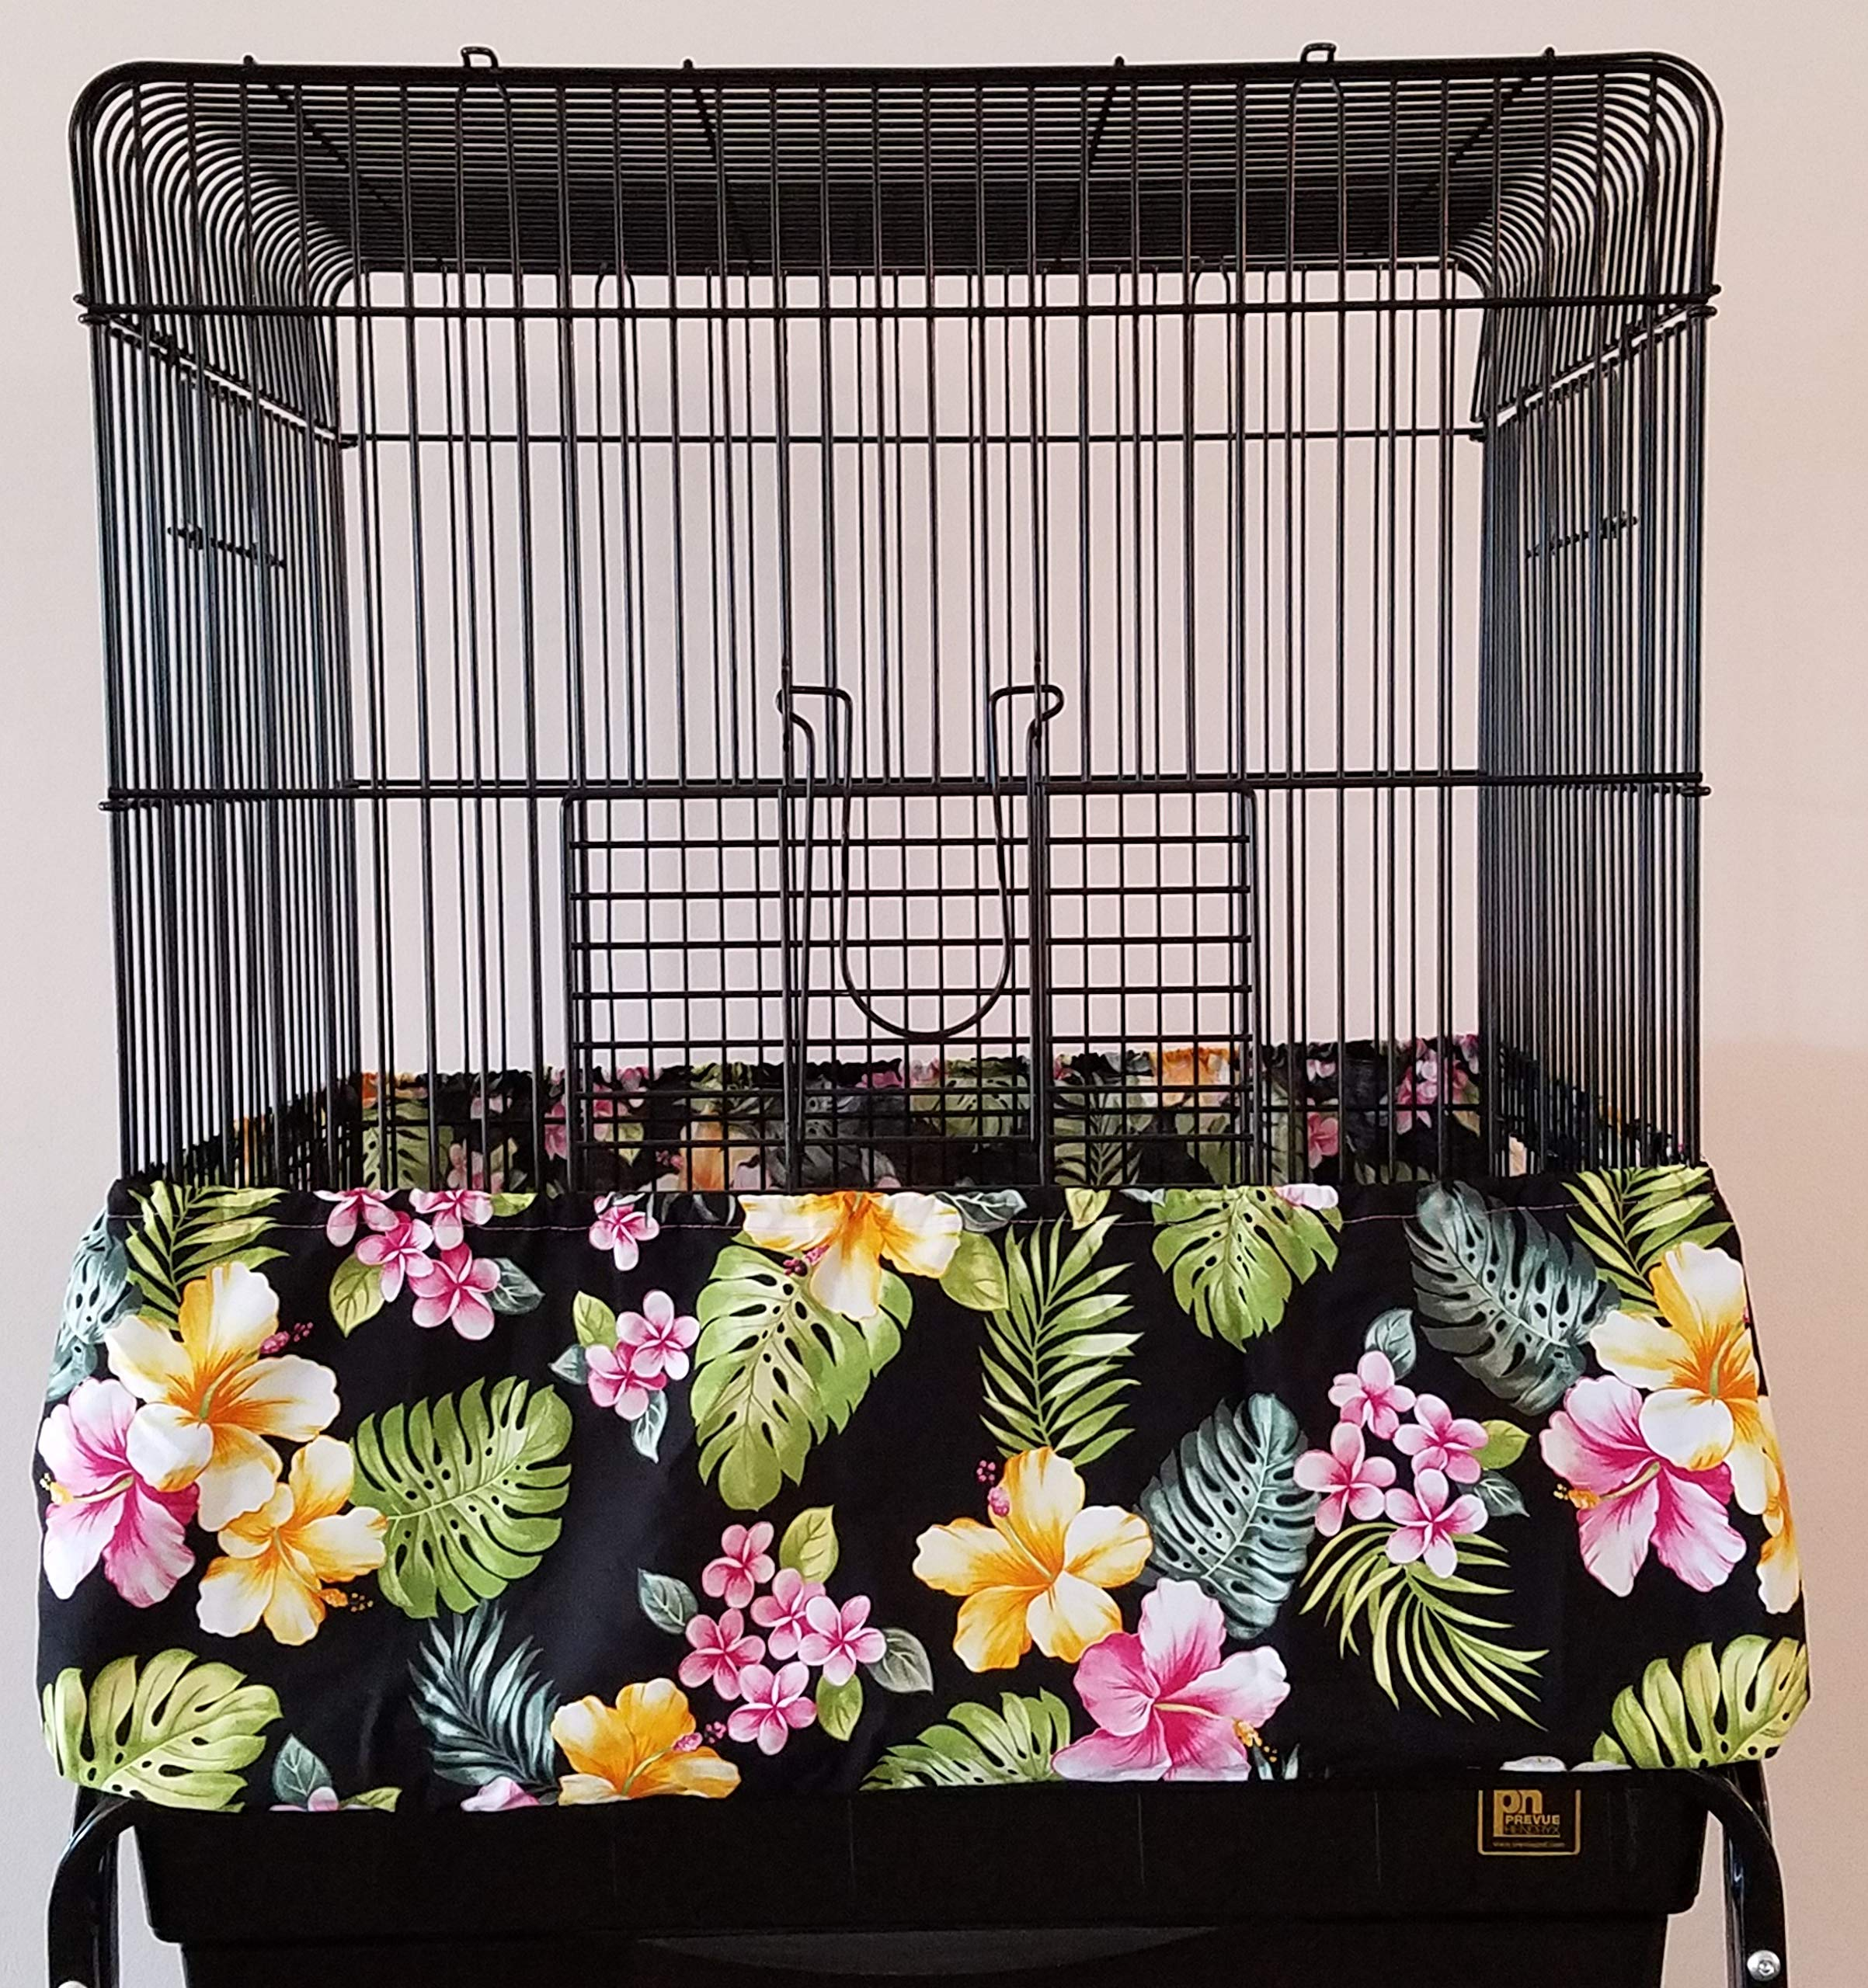 Penn Seed Seed Guard and Catcher Bird Cage Skirt - Hawaiian Hibiscus/Plumeria (Extra Large (56''-112'' Cage Circumference)) by Penn Seed